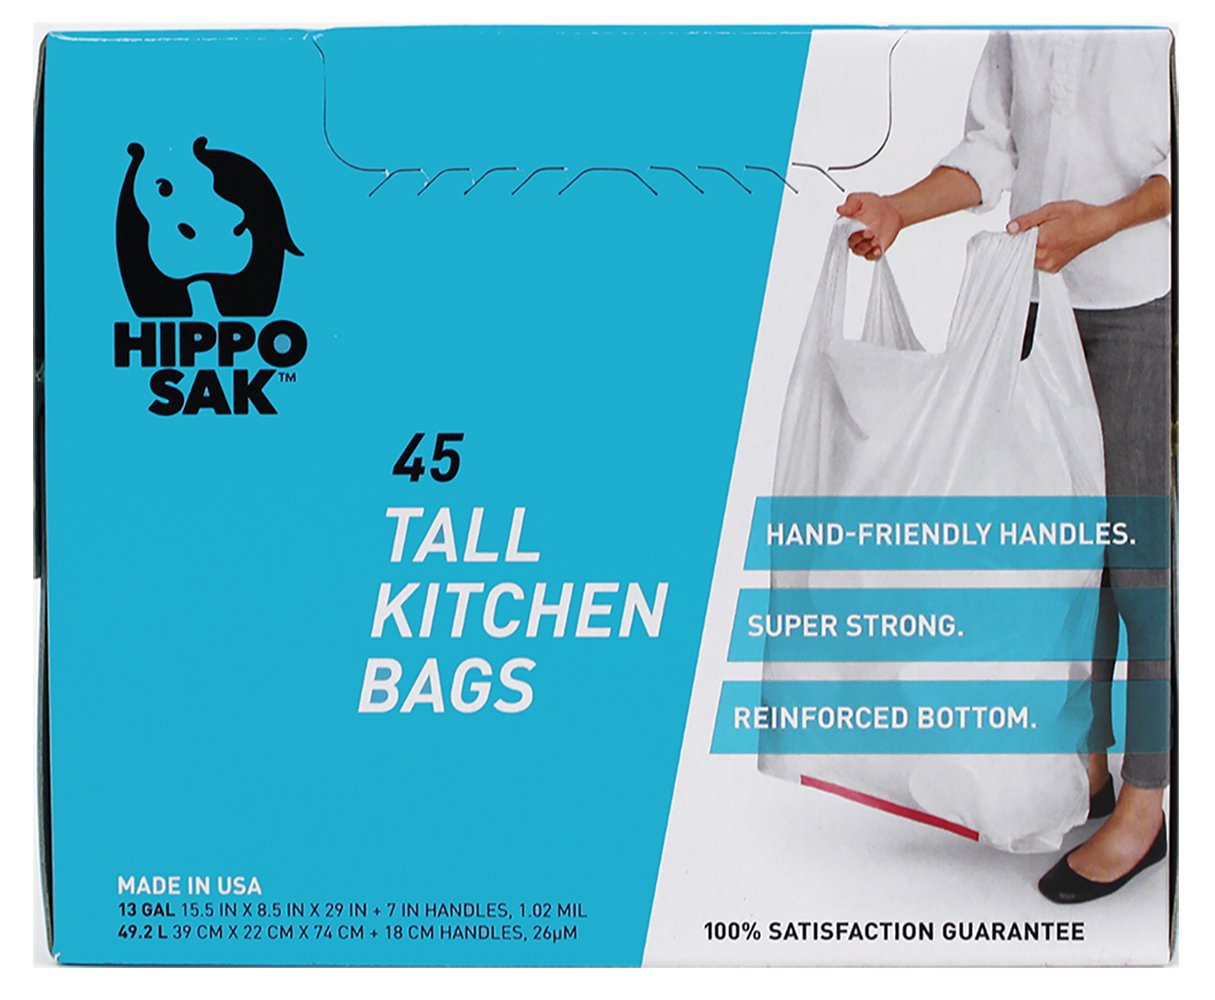 Amazon.com: Hippo Sak 13 gallon tall kitchen trash: Health ...